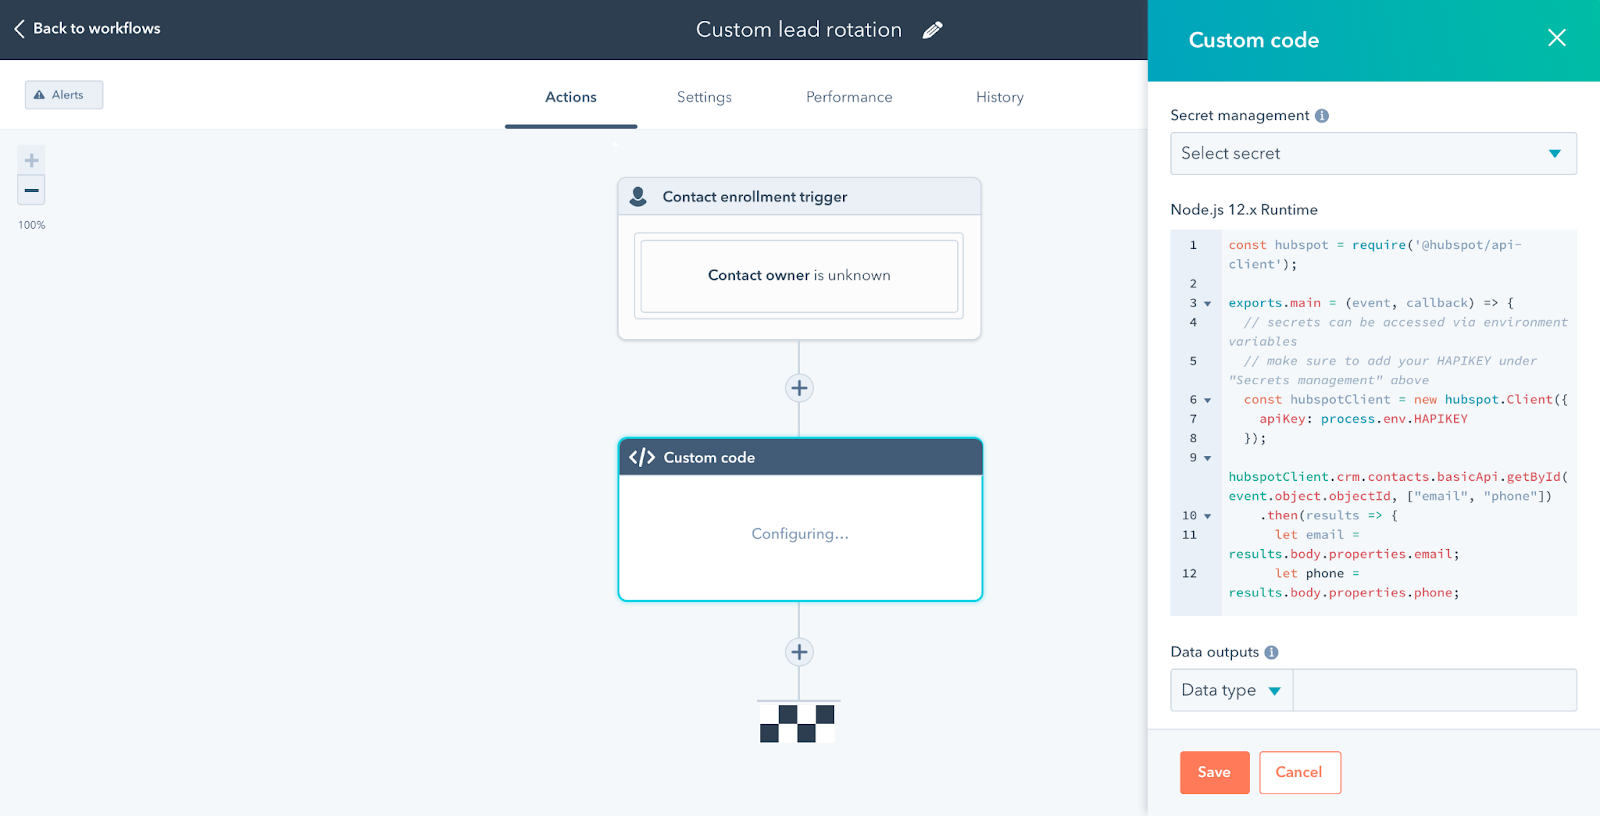 Workflow builder with a custom code insert